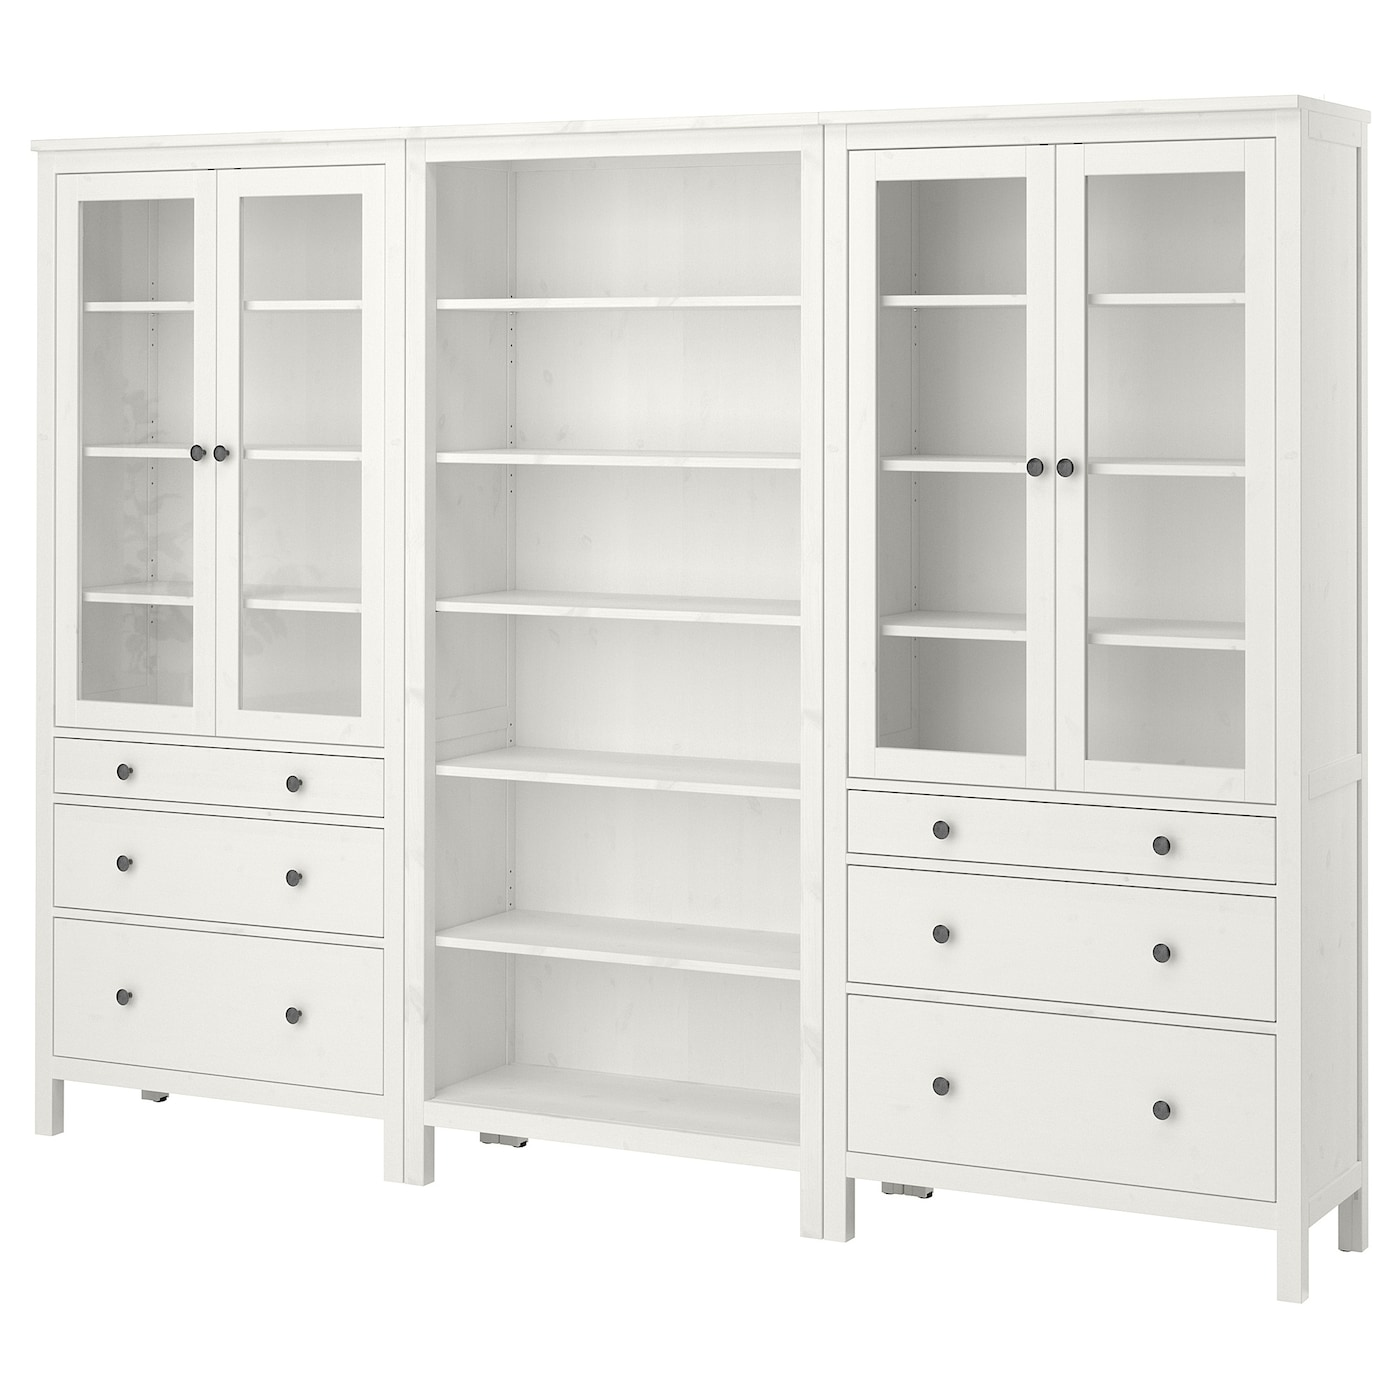 IKEA HEMNES storage combination w doors/drawers Solid wood has a natural feel.